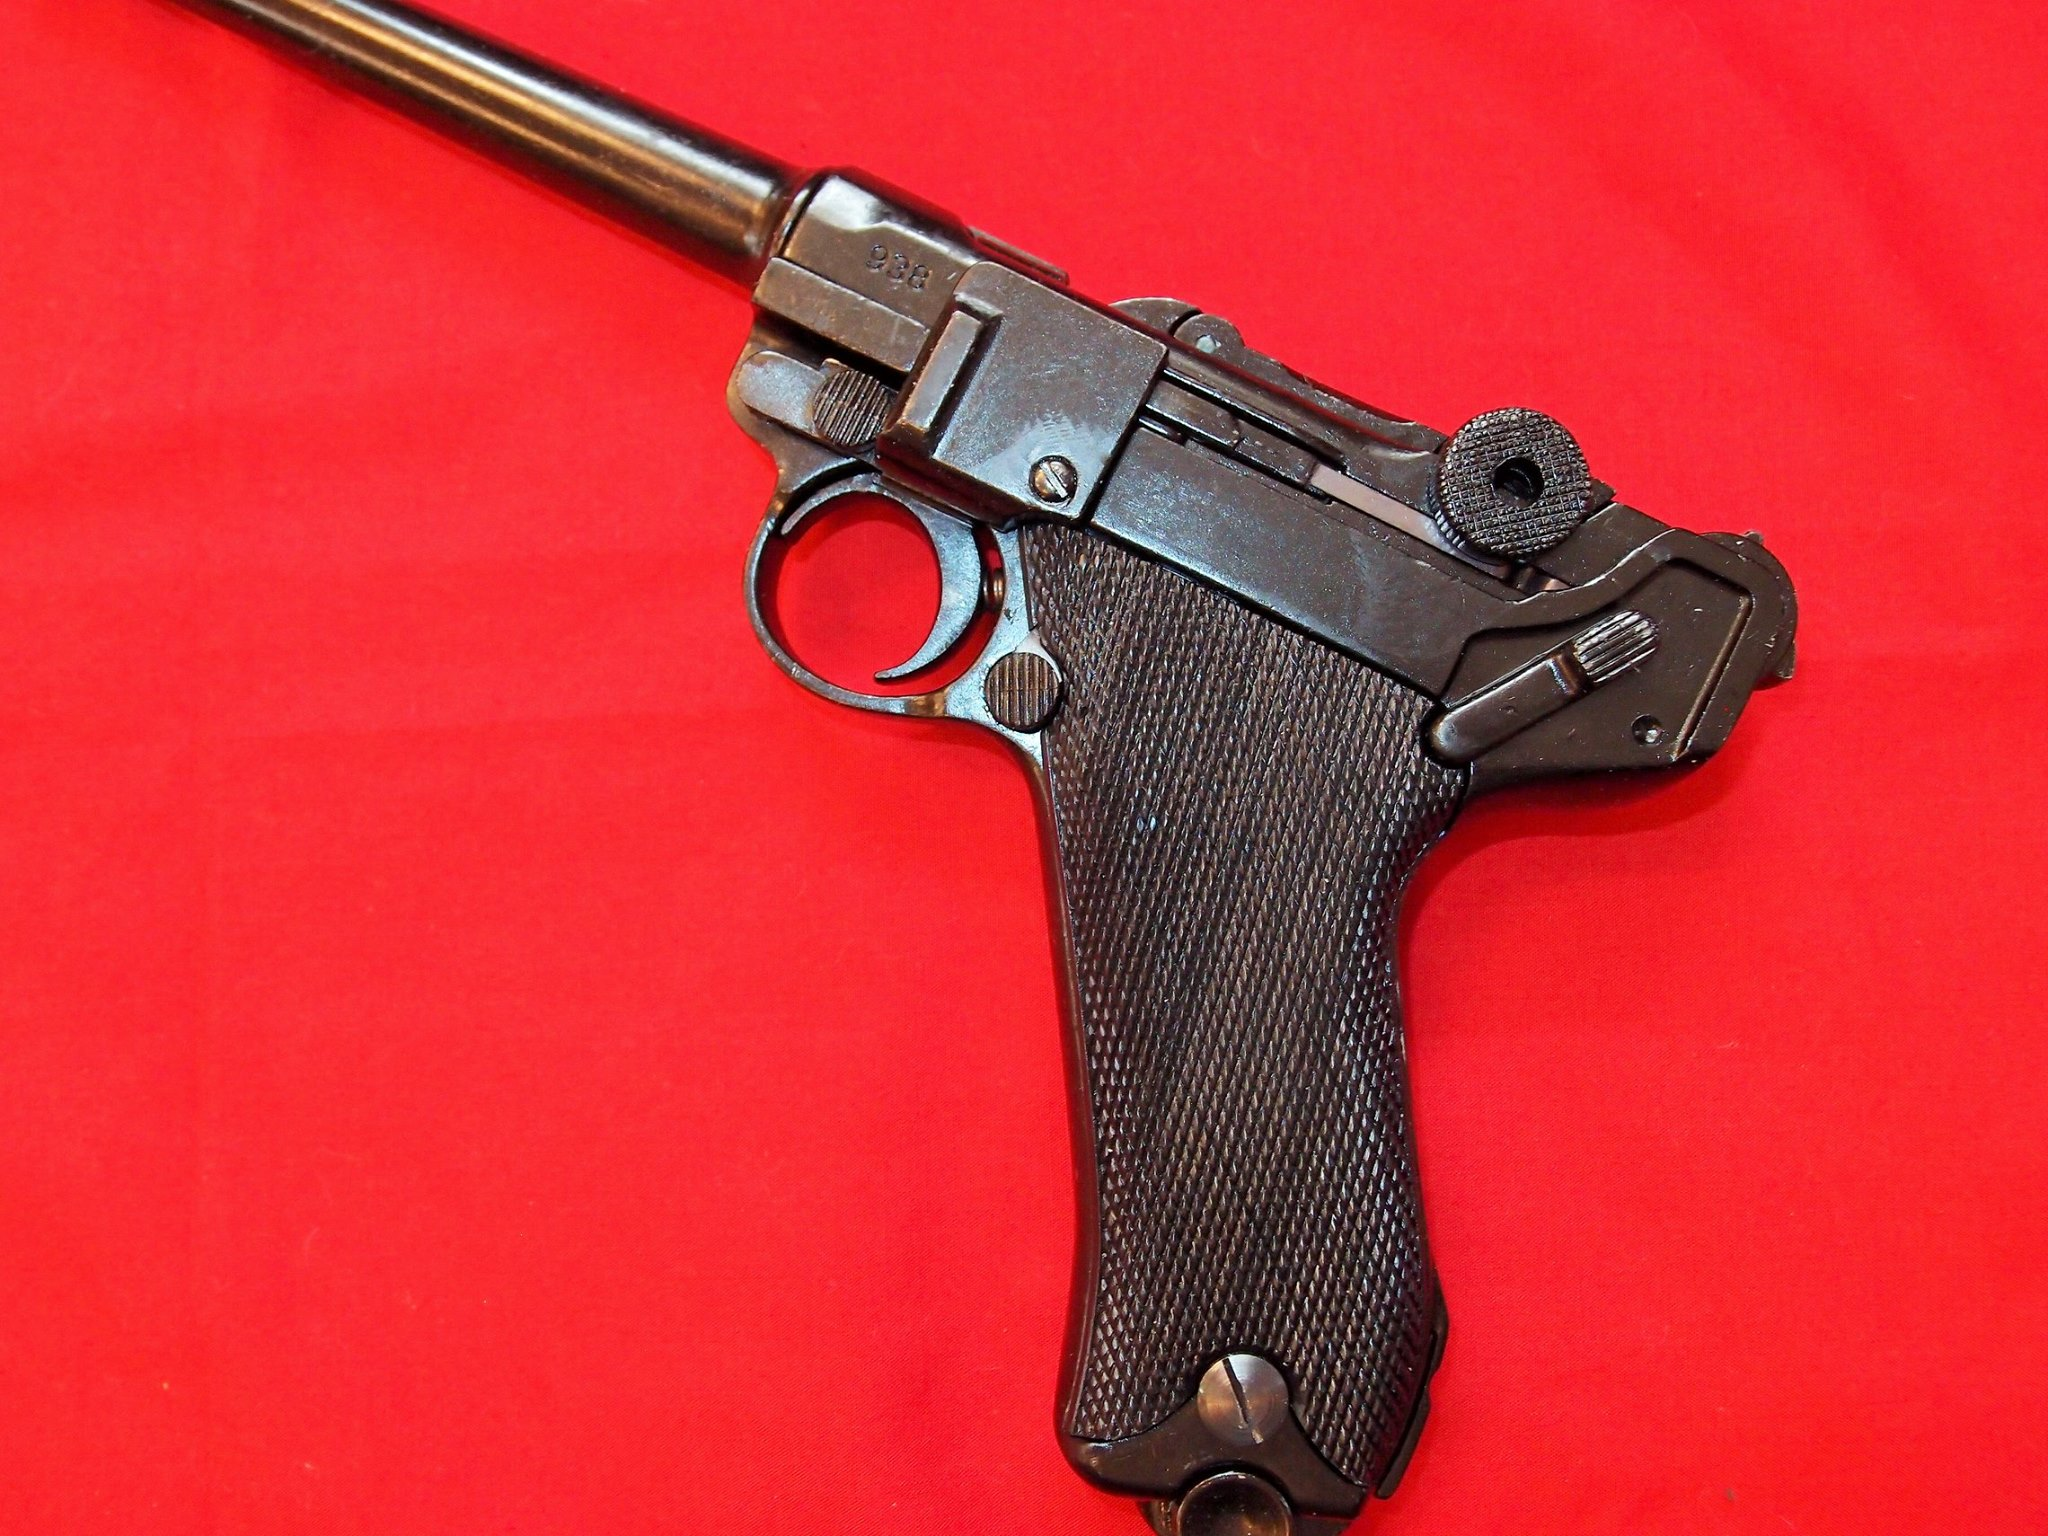 REPLICA WW1 WW2 GERMAN NAVY LUGER PISTOL BY DENIX